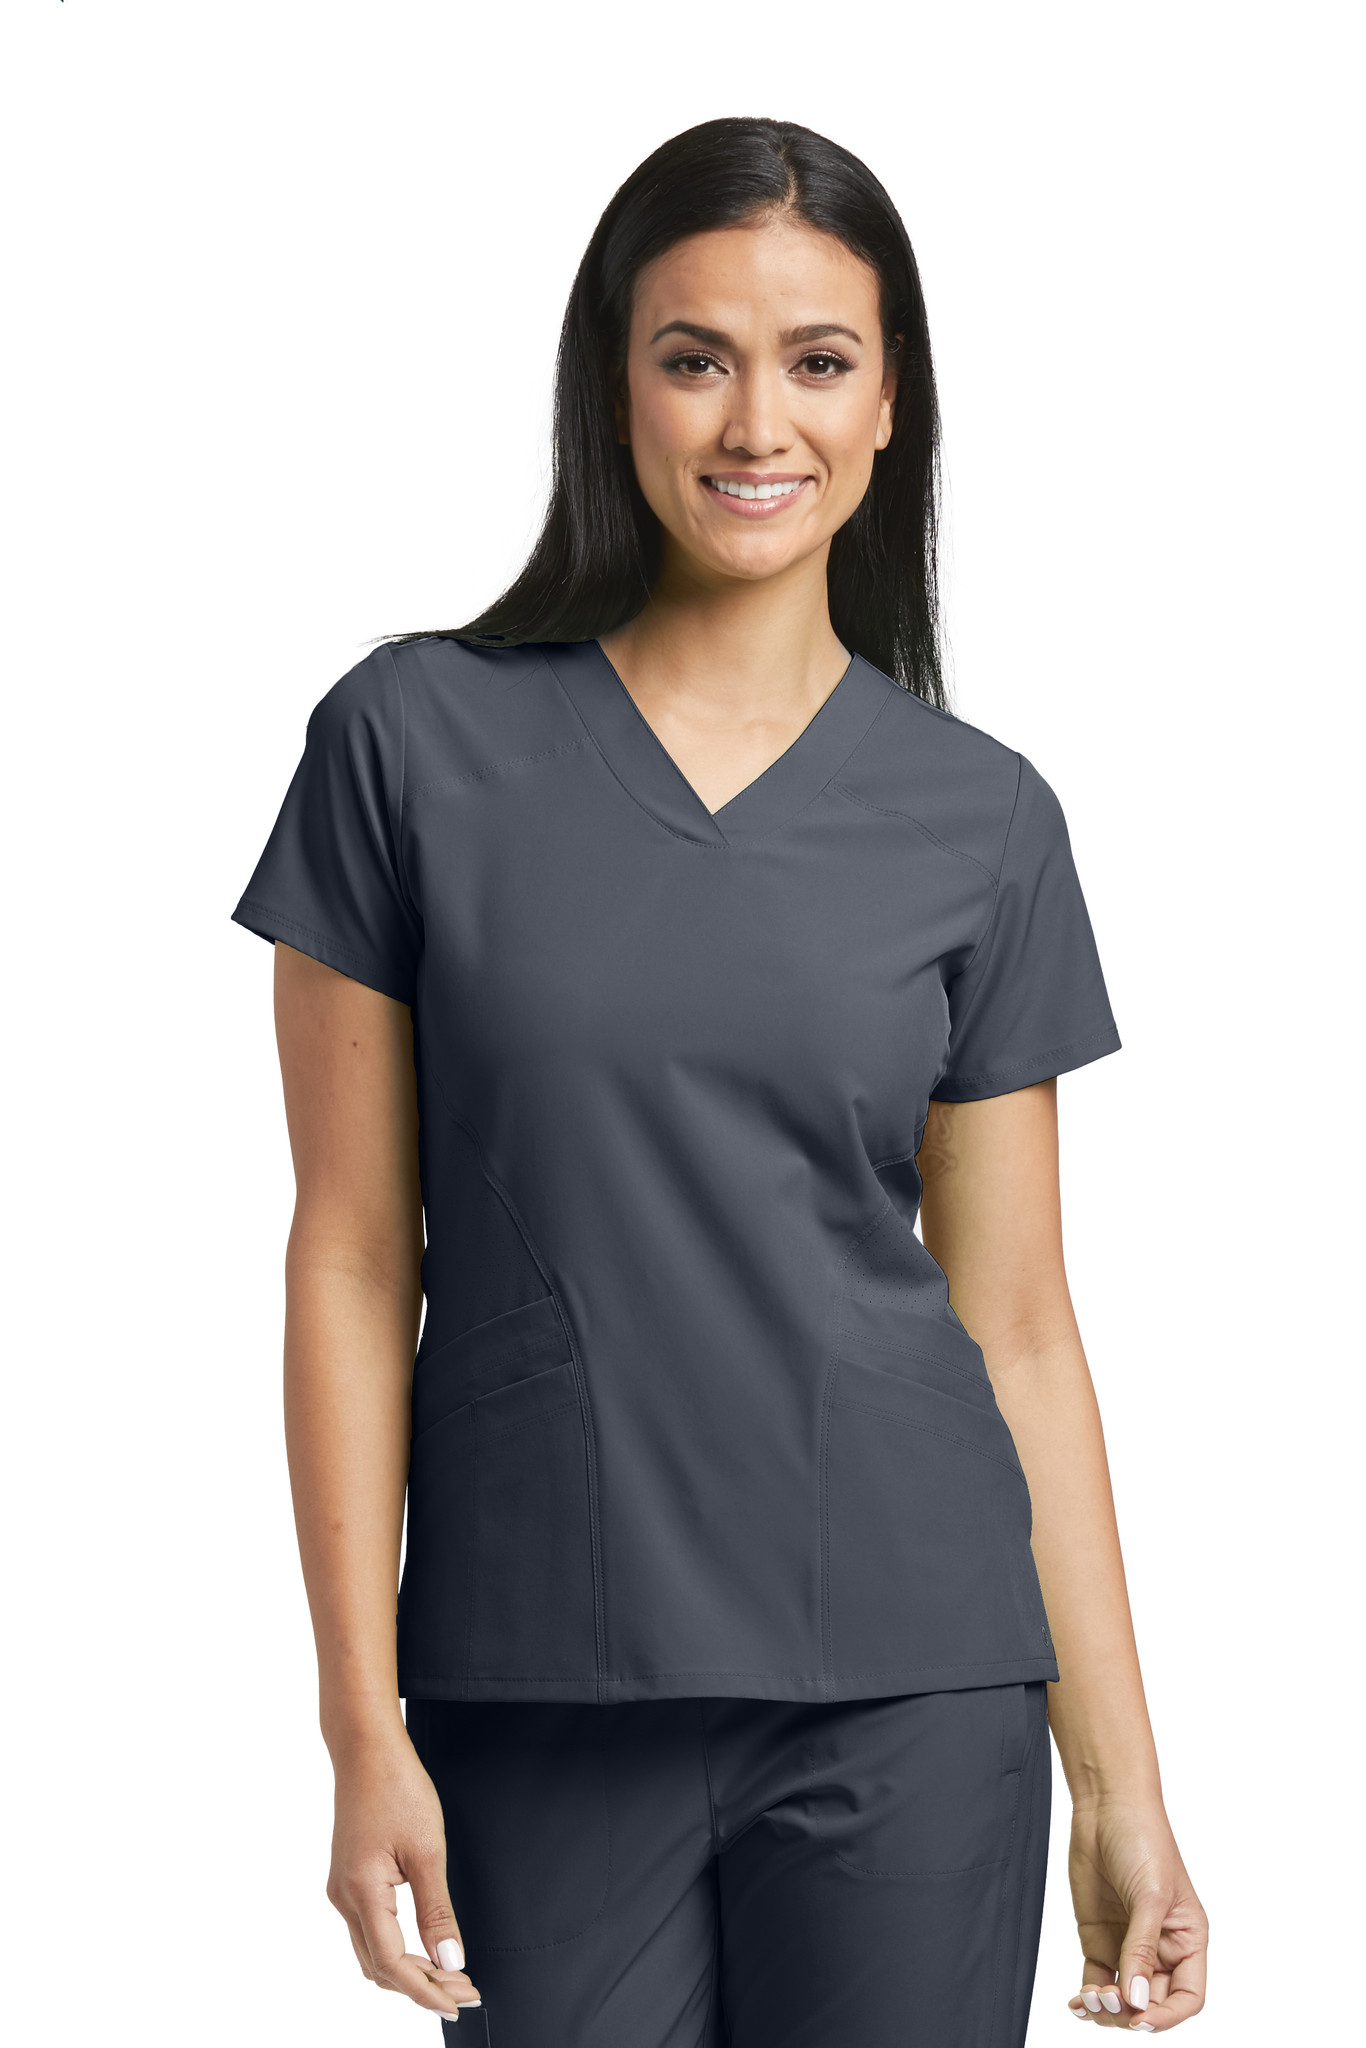 Barco ONE 5105 Women's Four Pocket Perforated Detail Performance V-Neck Scrub Top Front